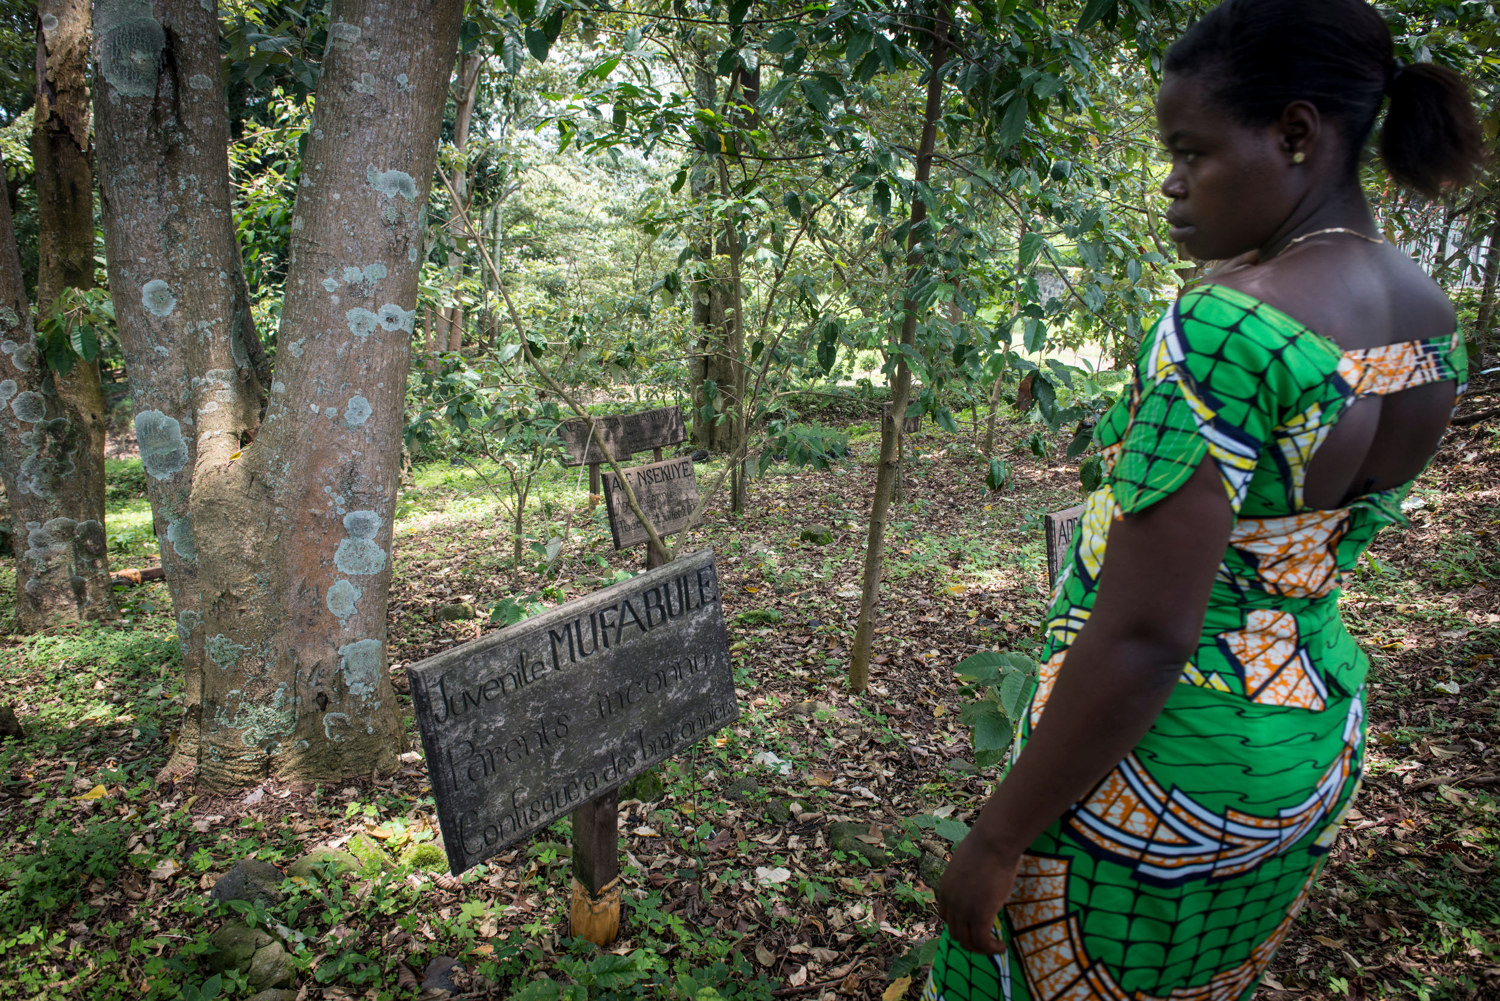 After church services, the rangers have the rest of the day off to listen to music and roam around the park. Francine visits the gorilla cemetery.